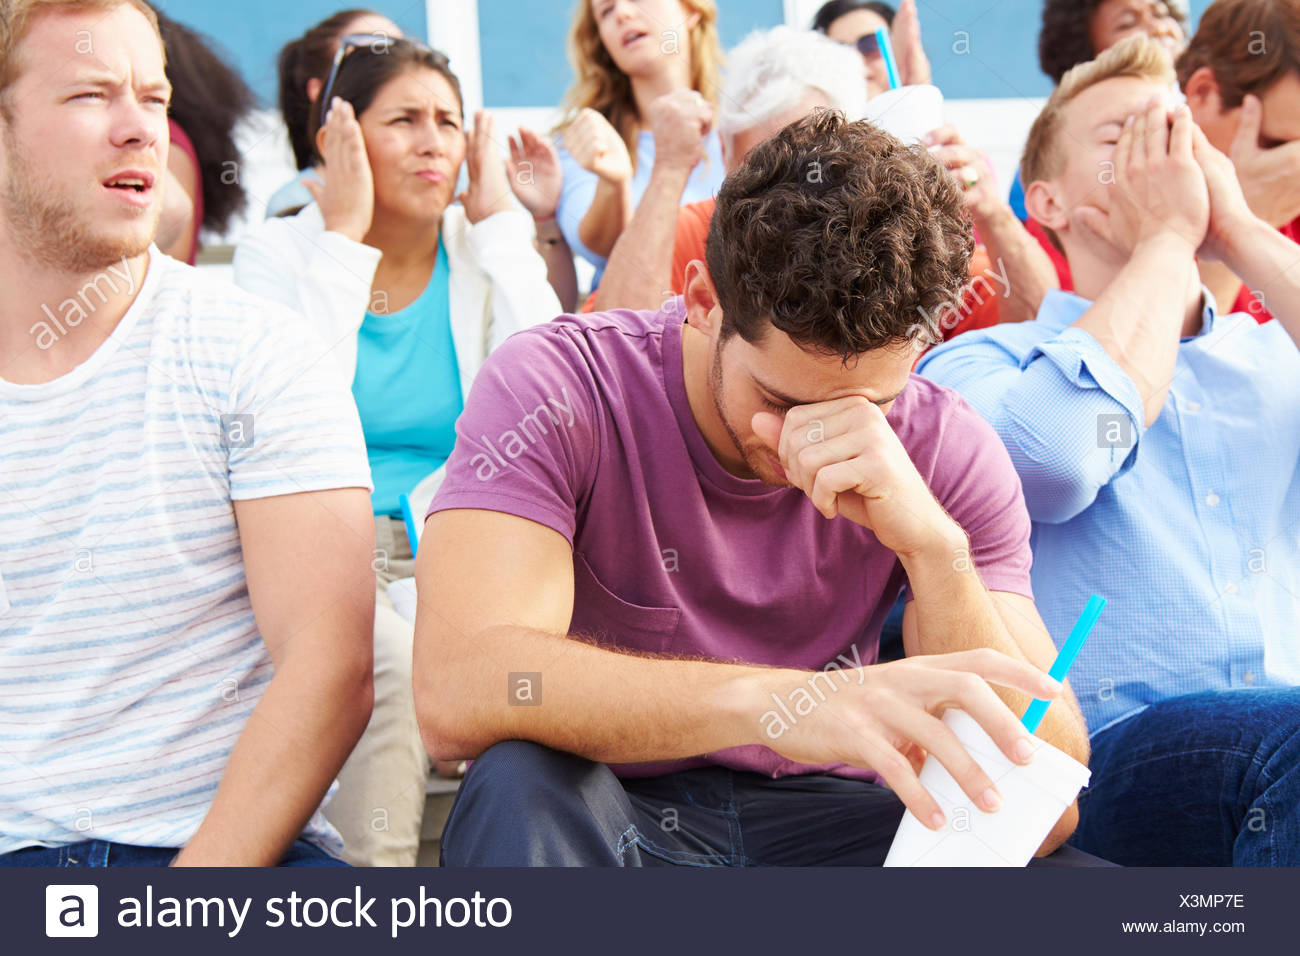 Disappointed Spectators At Outdoor Sports Event - Stock Image